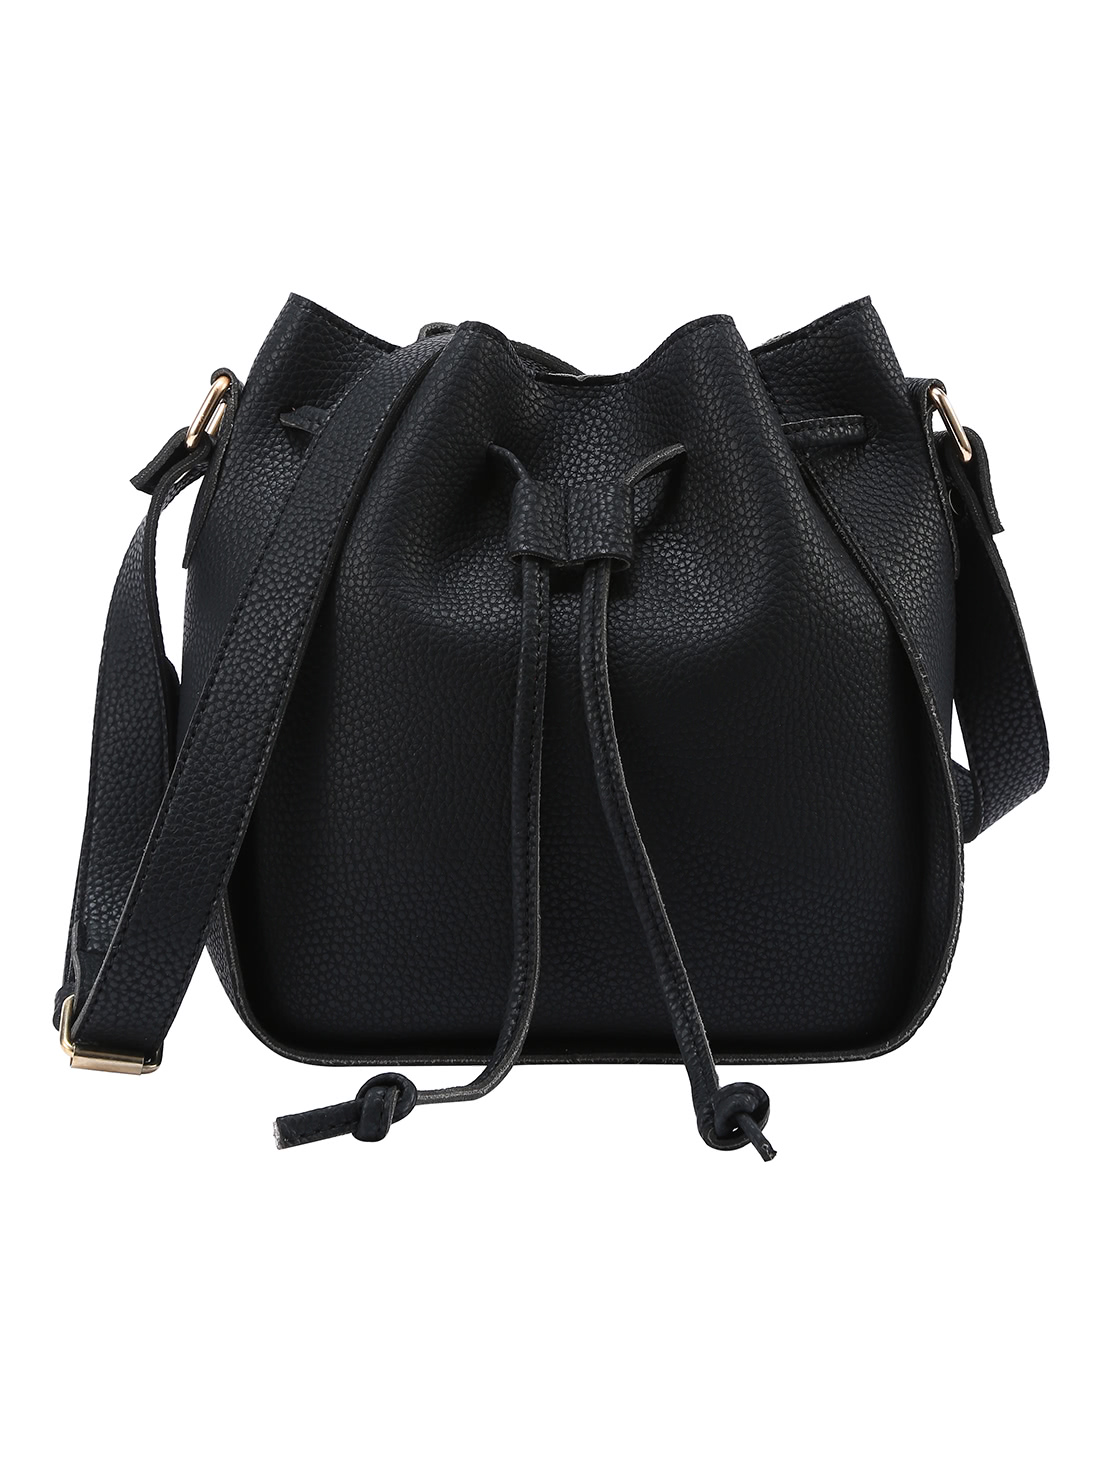 Embossed Faux Leather Drawstring Bucket Bag - Black